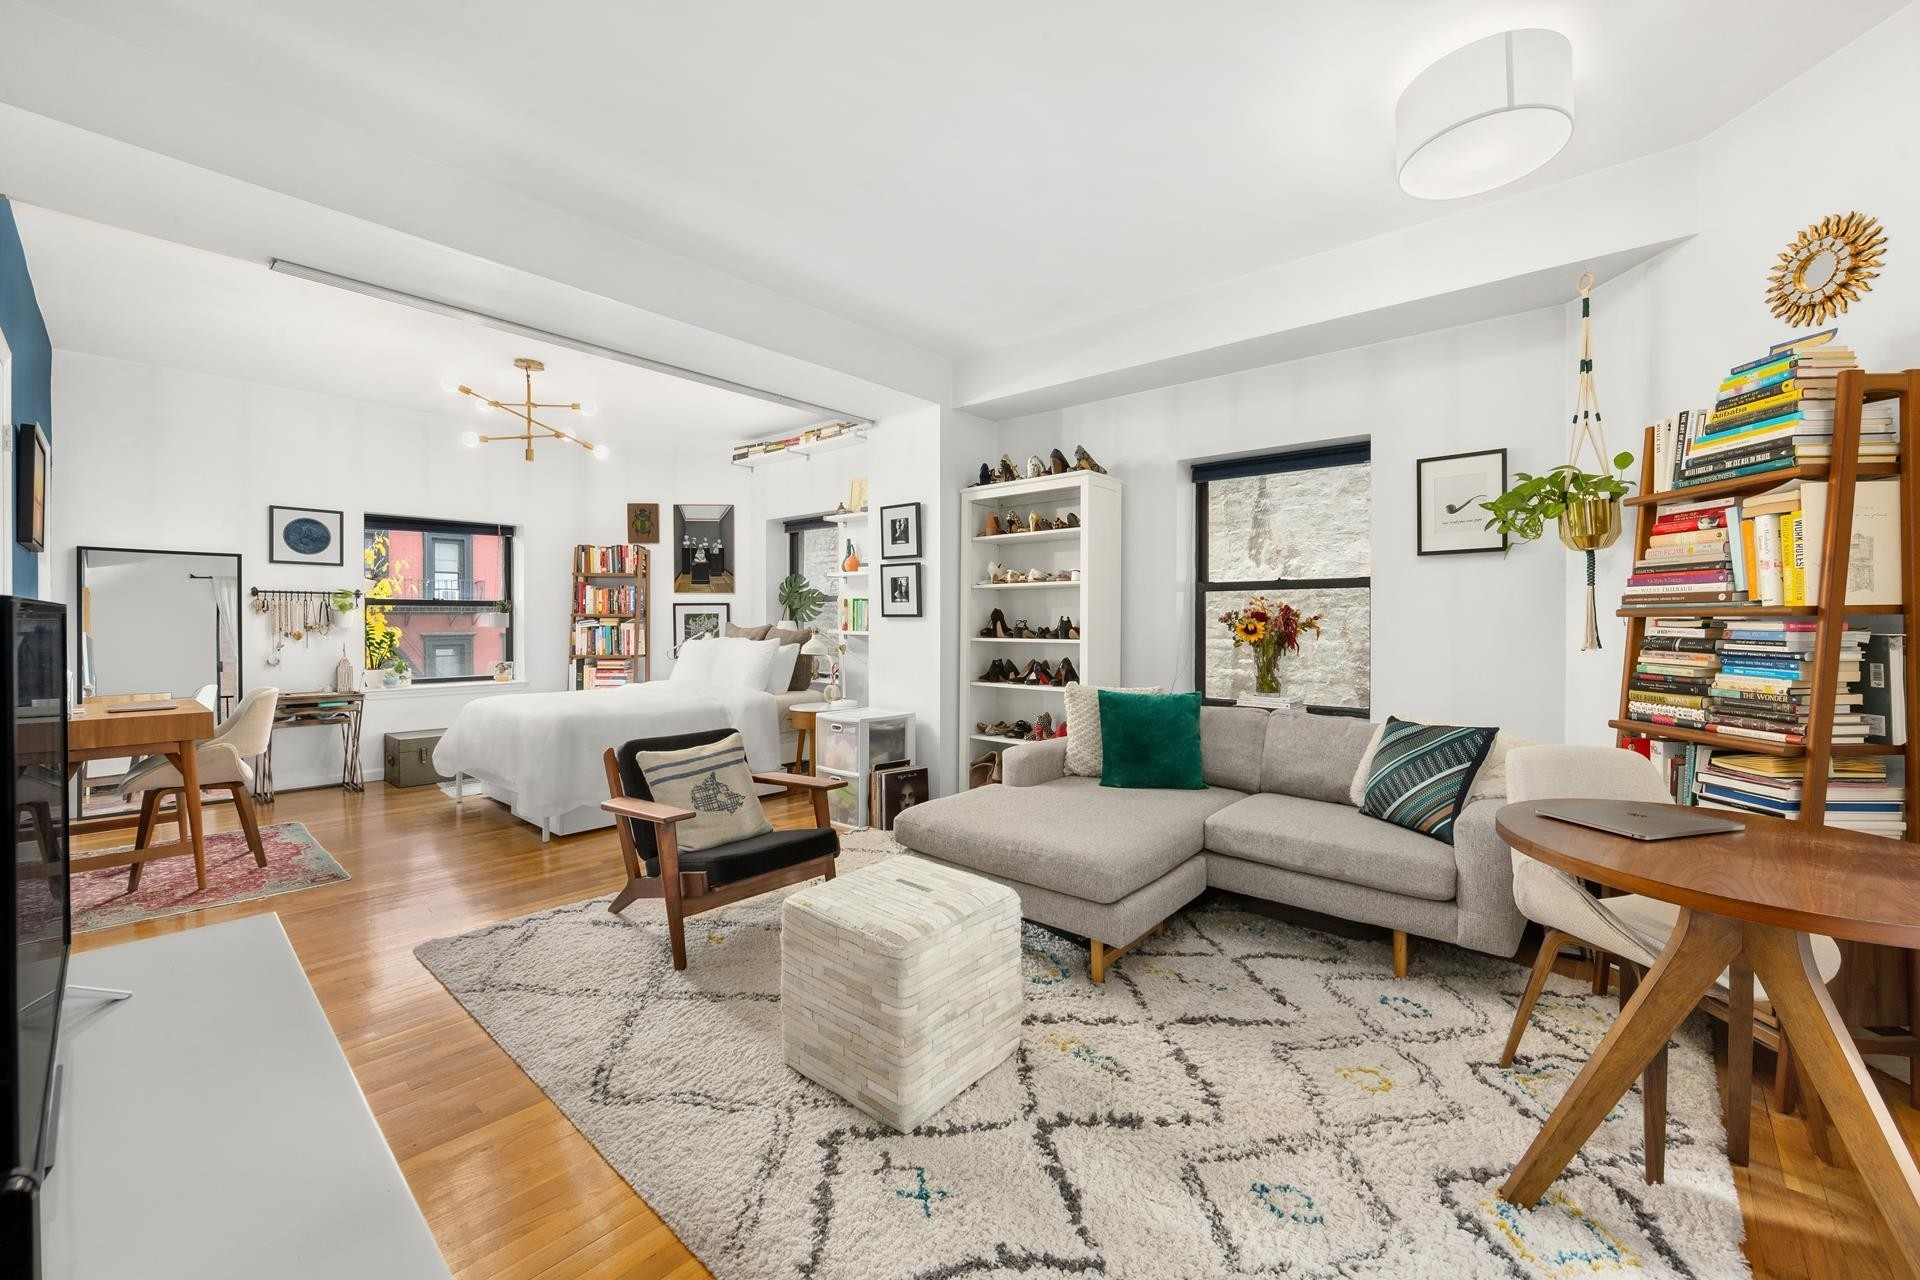 Property en 186 West 80th St, 4L Upper West Side, New York, NY 10024